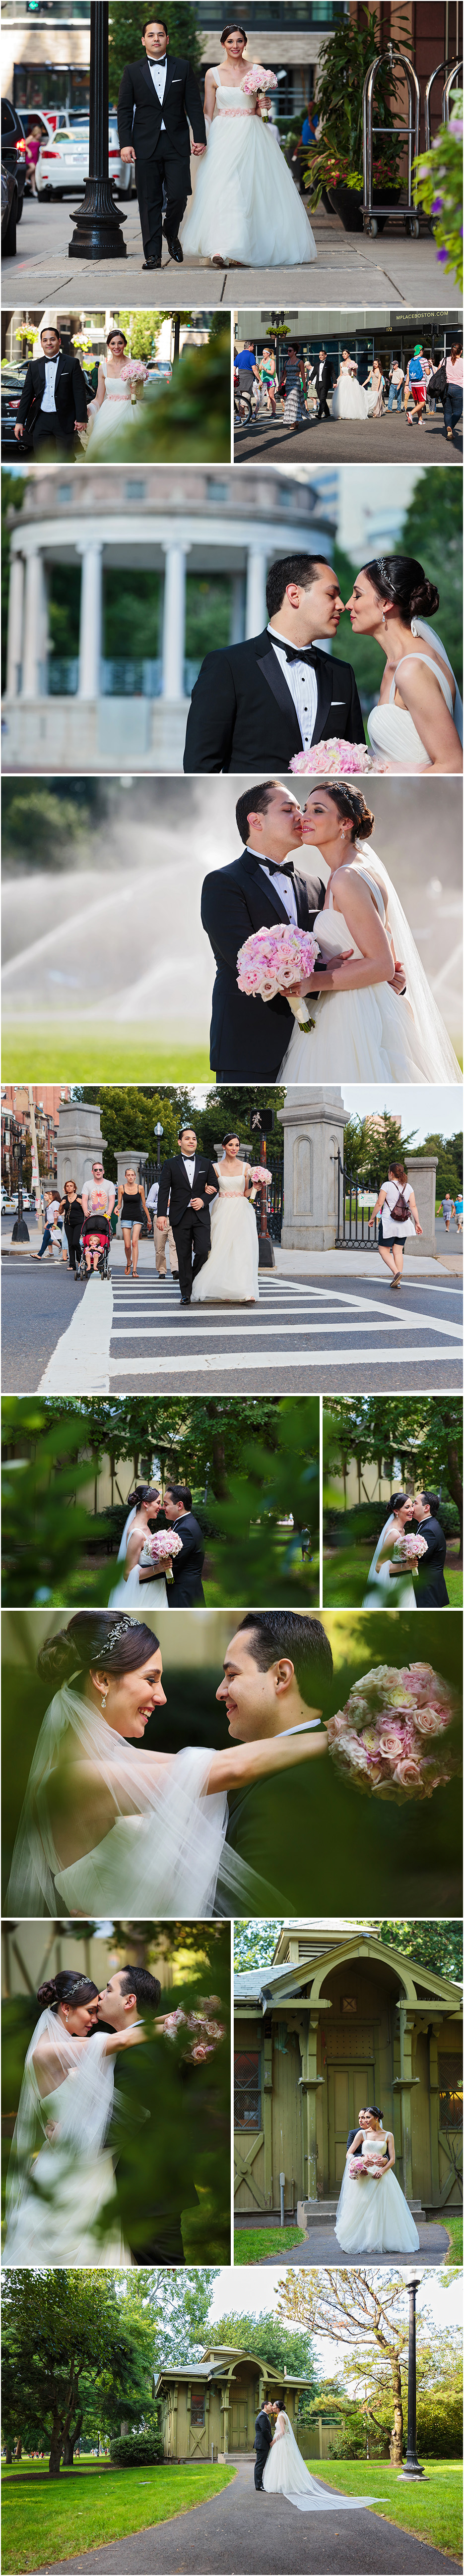 WEDDING PHOTOGRAPHER RITZ CARLTON BOSTON COMMON